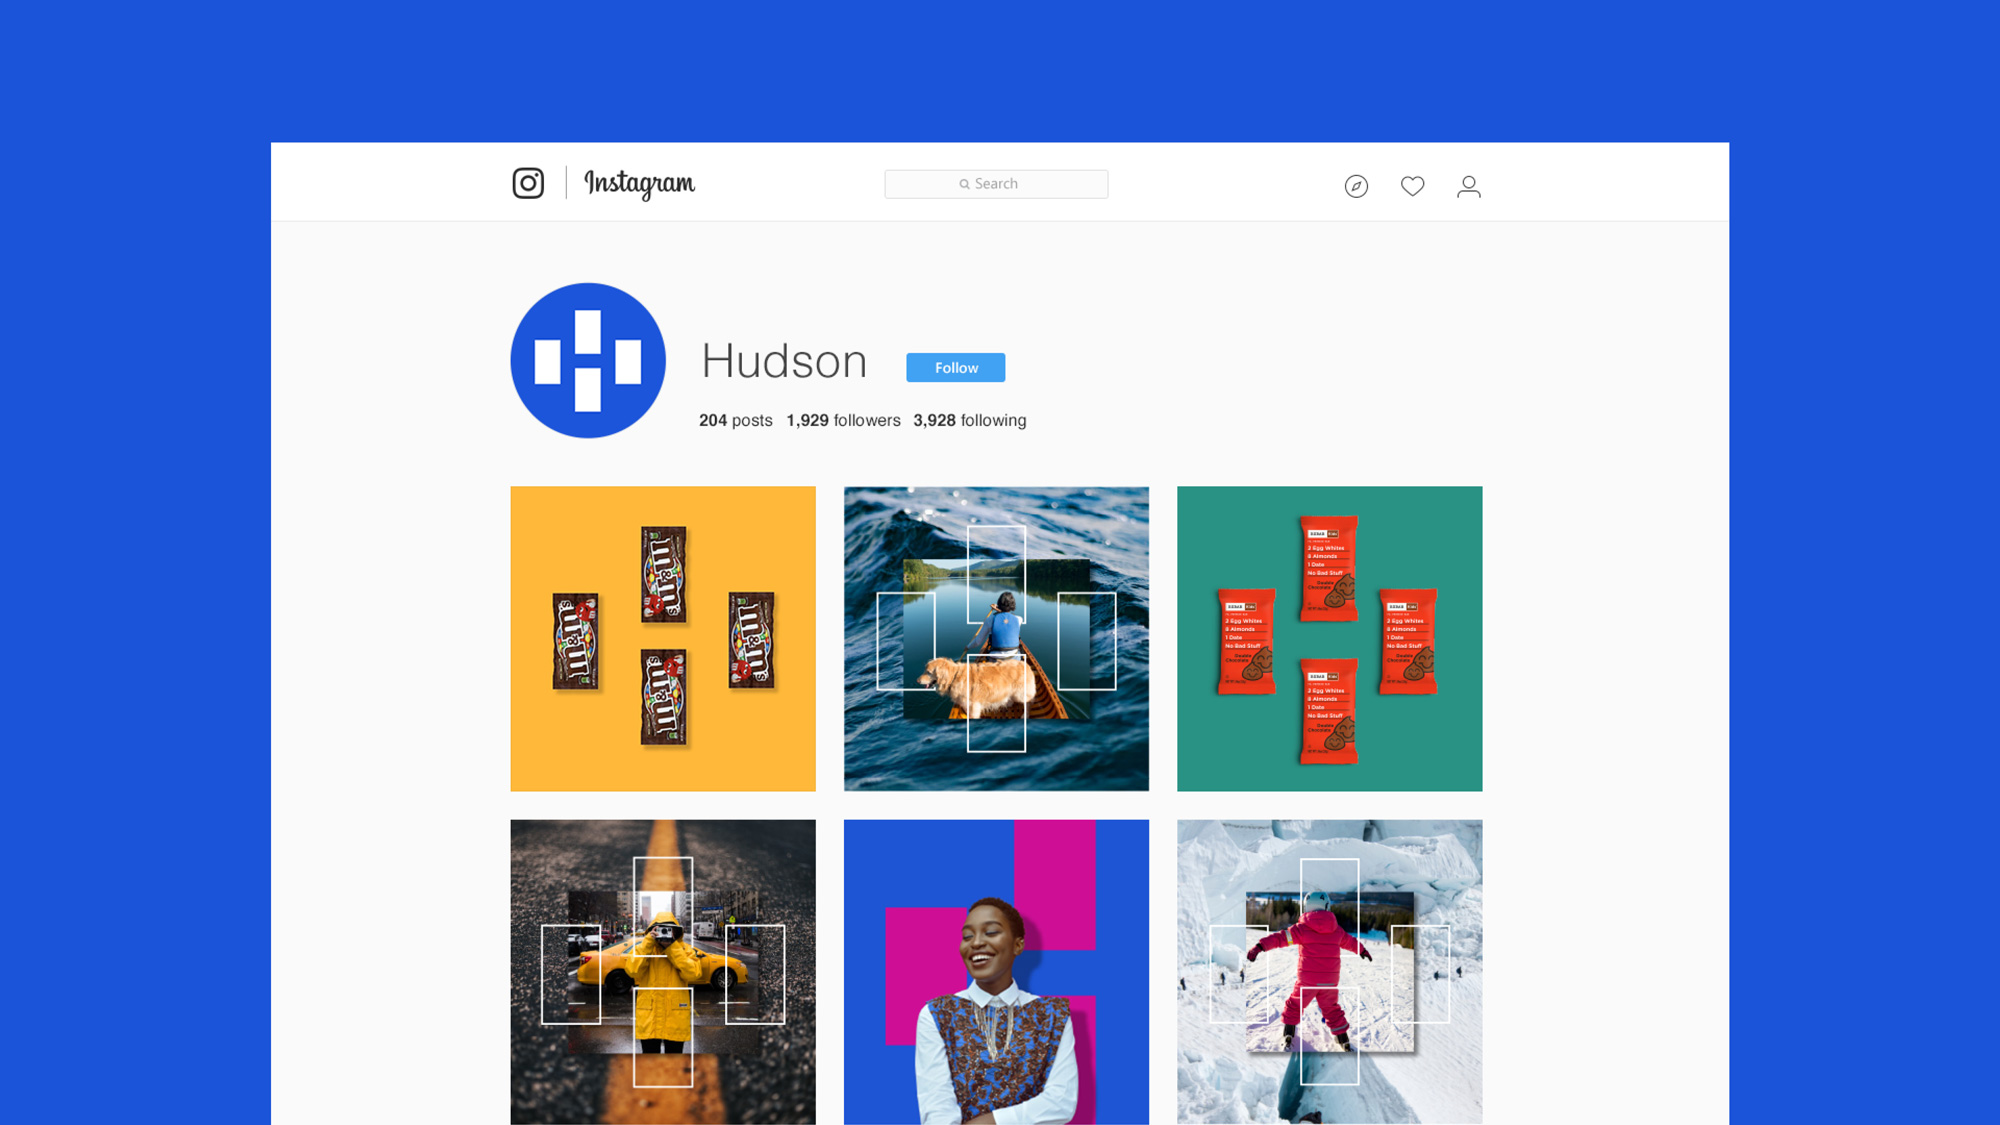 New Logo and Identity for Hudson by Siegel+Gale